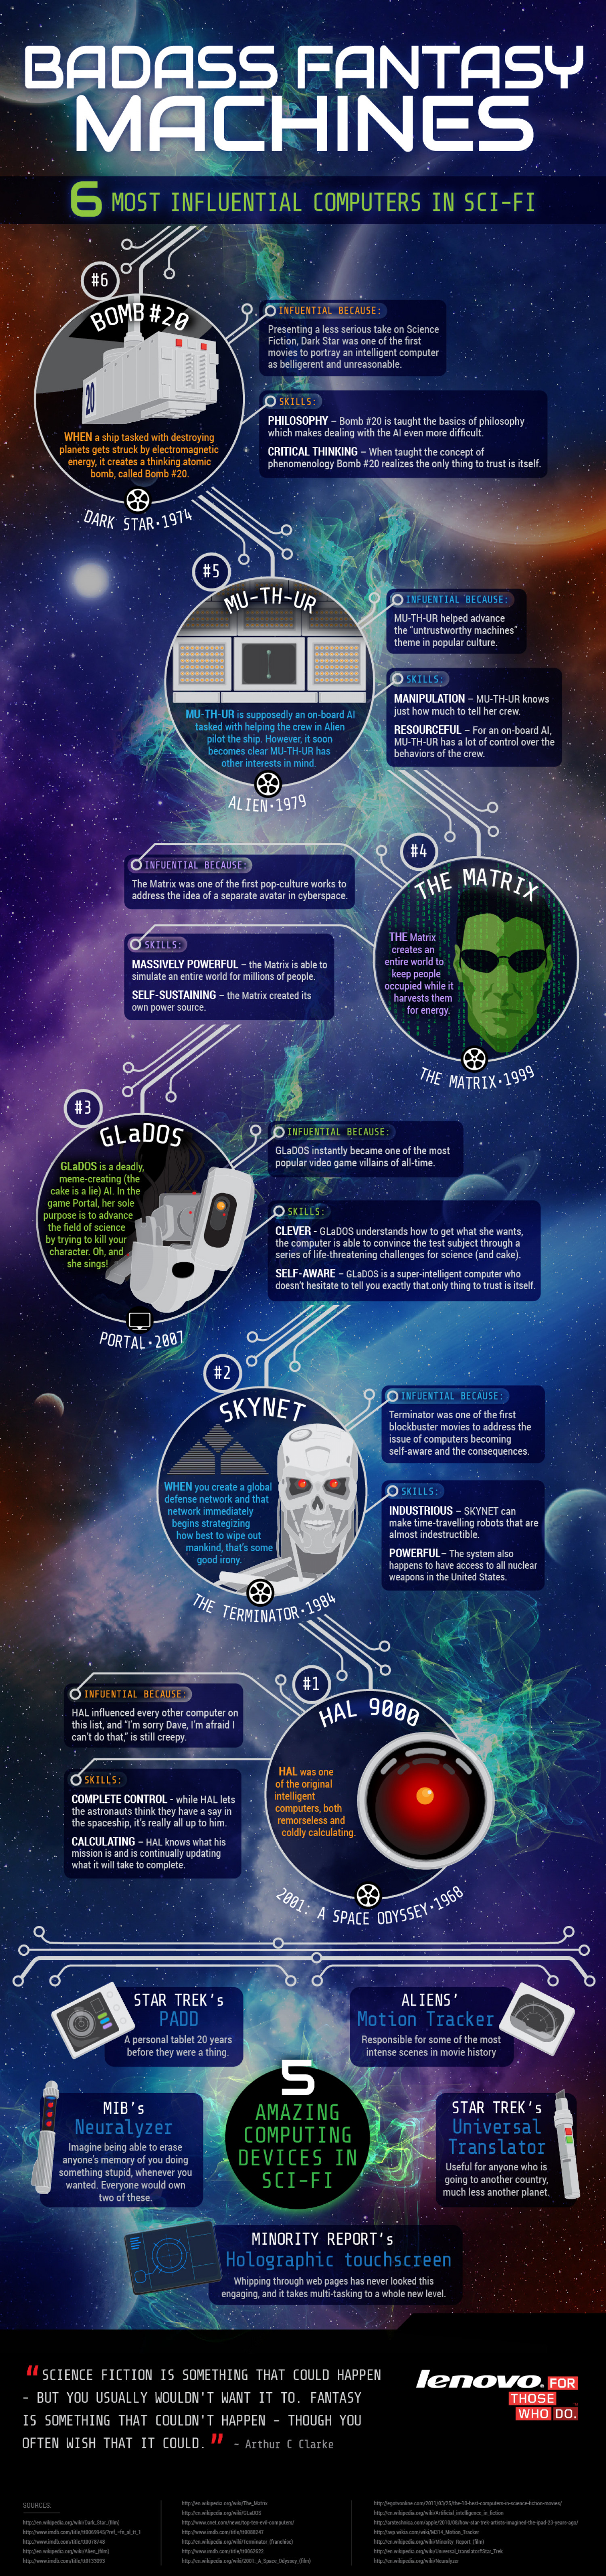 Badass Fantasy Machines: 6 Most Influential Computers in Sci-Fi Infographic